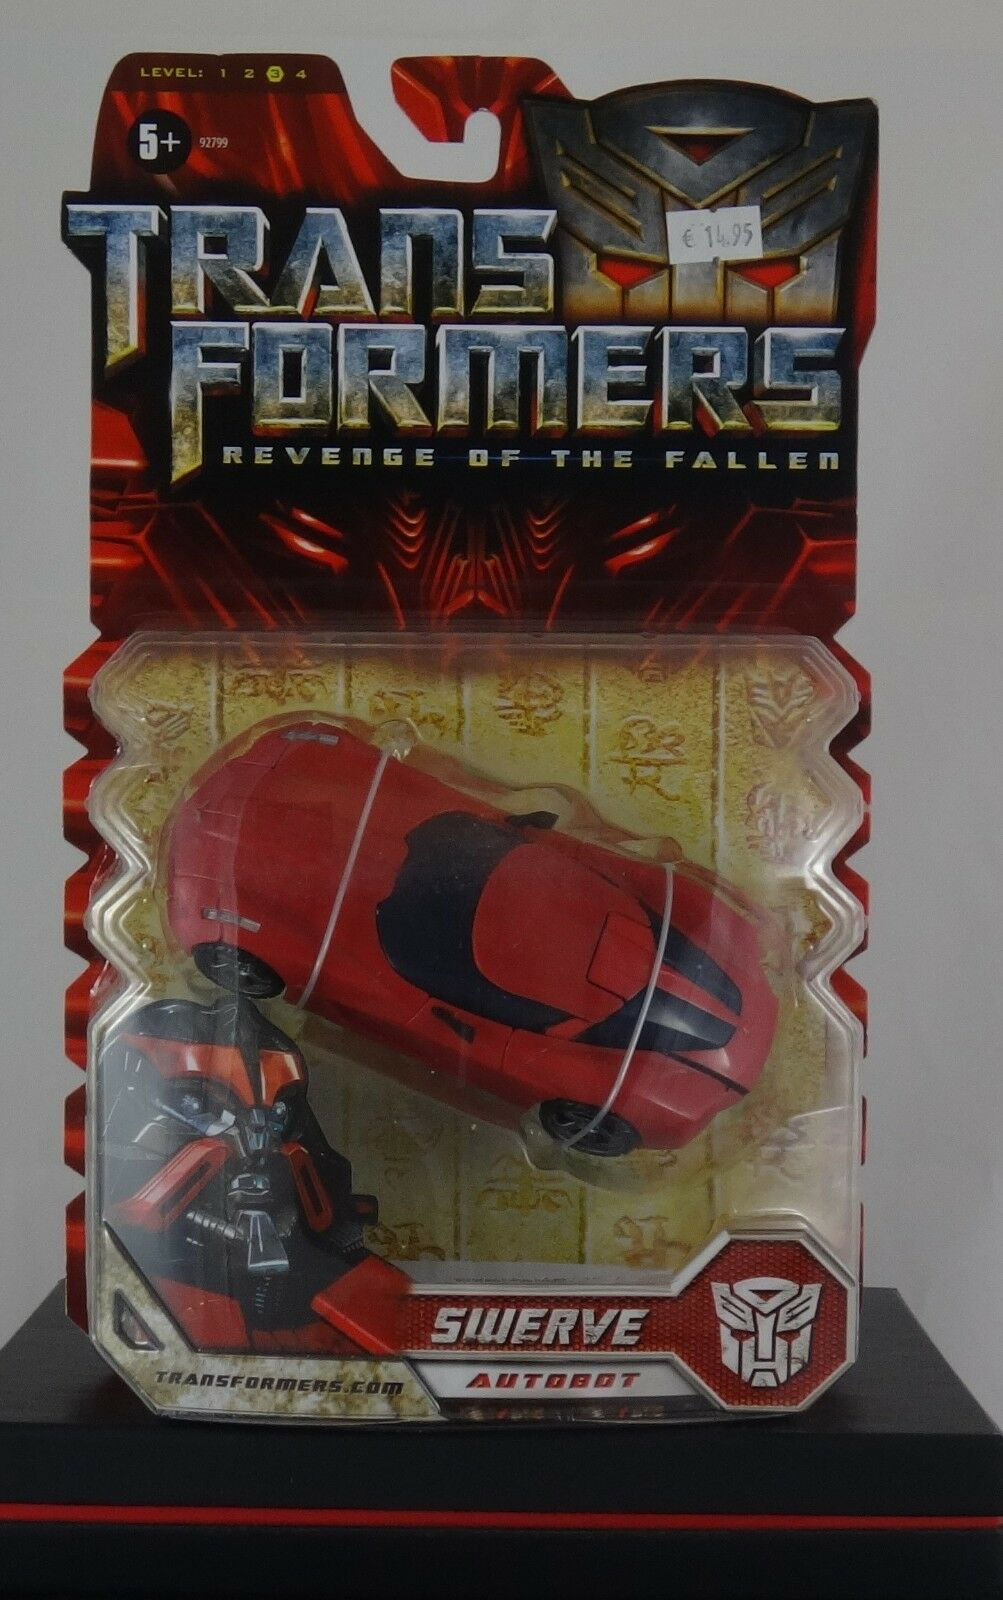 Hasbro Transformers Revenge of the Fallen Deluxe Swerve (92799,2009), Neu, OVP